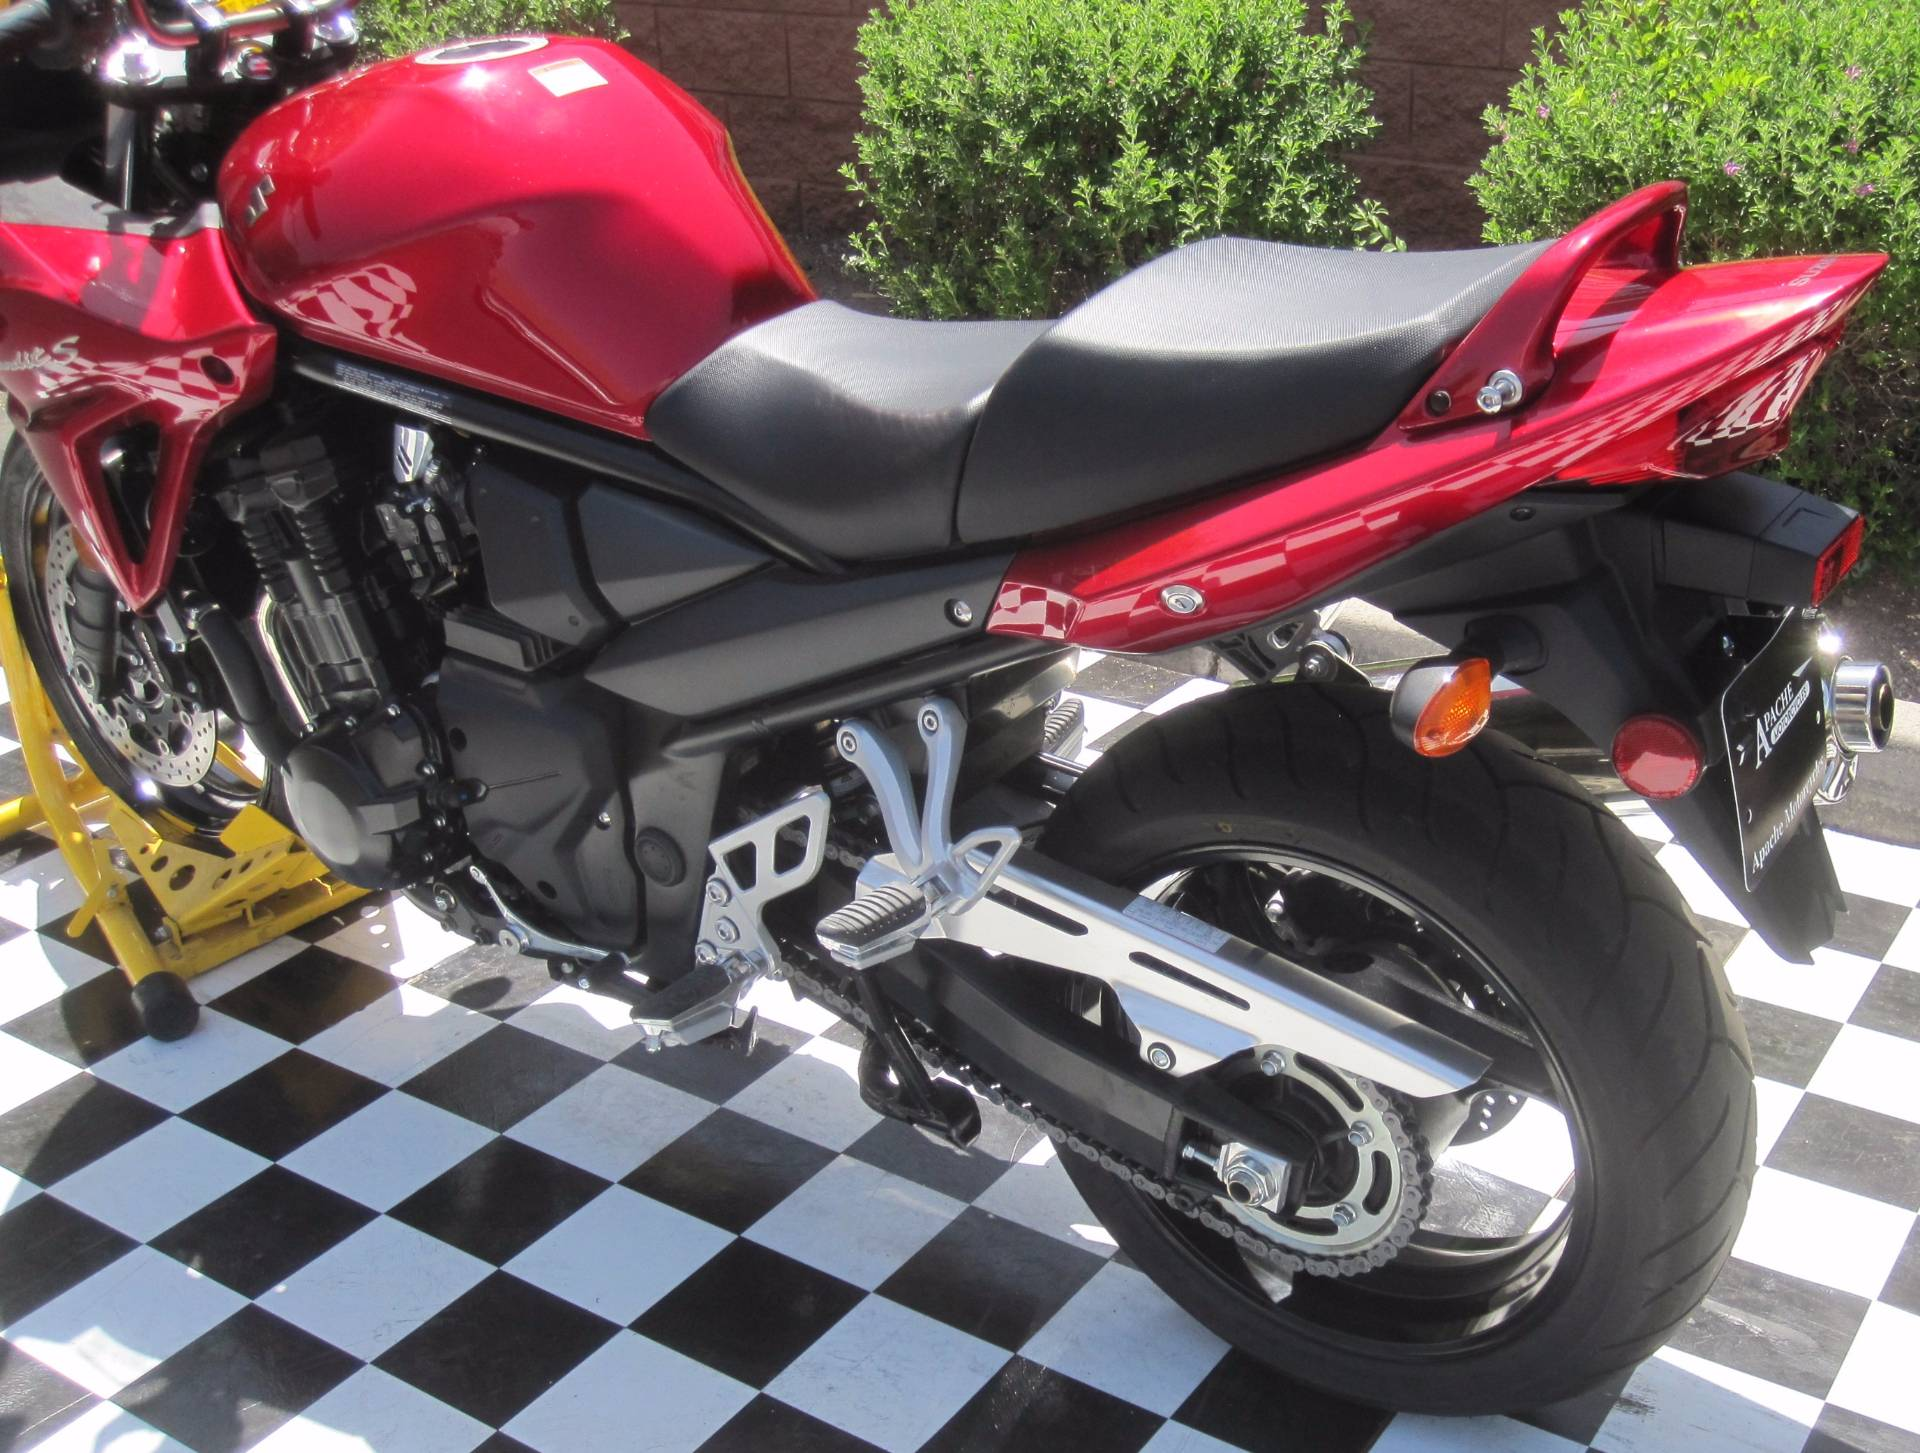 2016 Suzuki Bandit 1250S ABS in Phoenix, Arizona